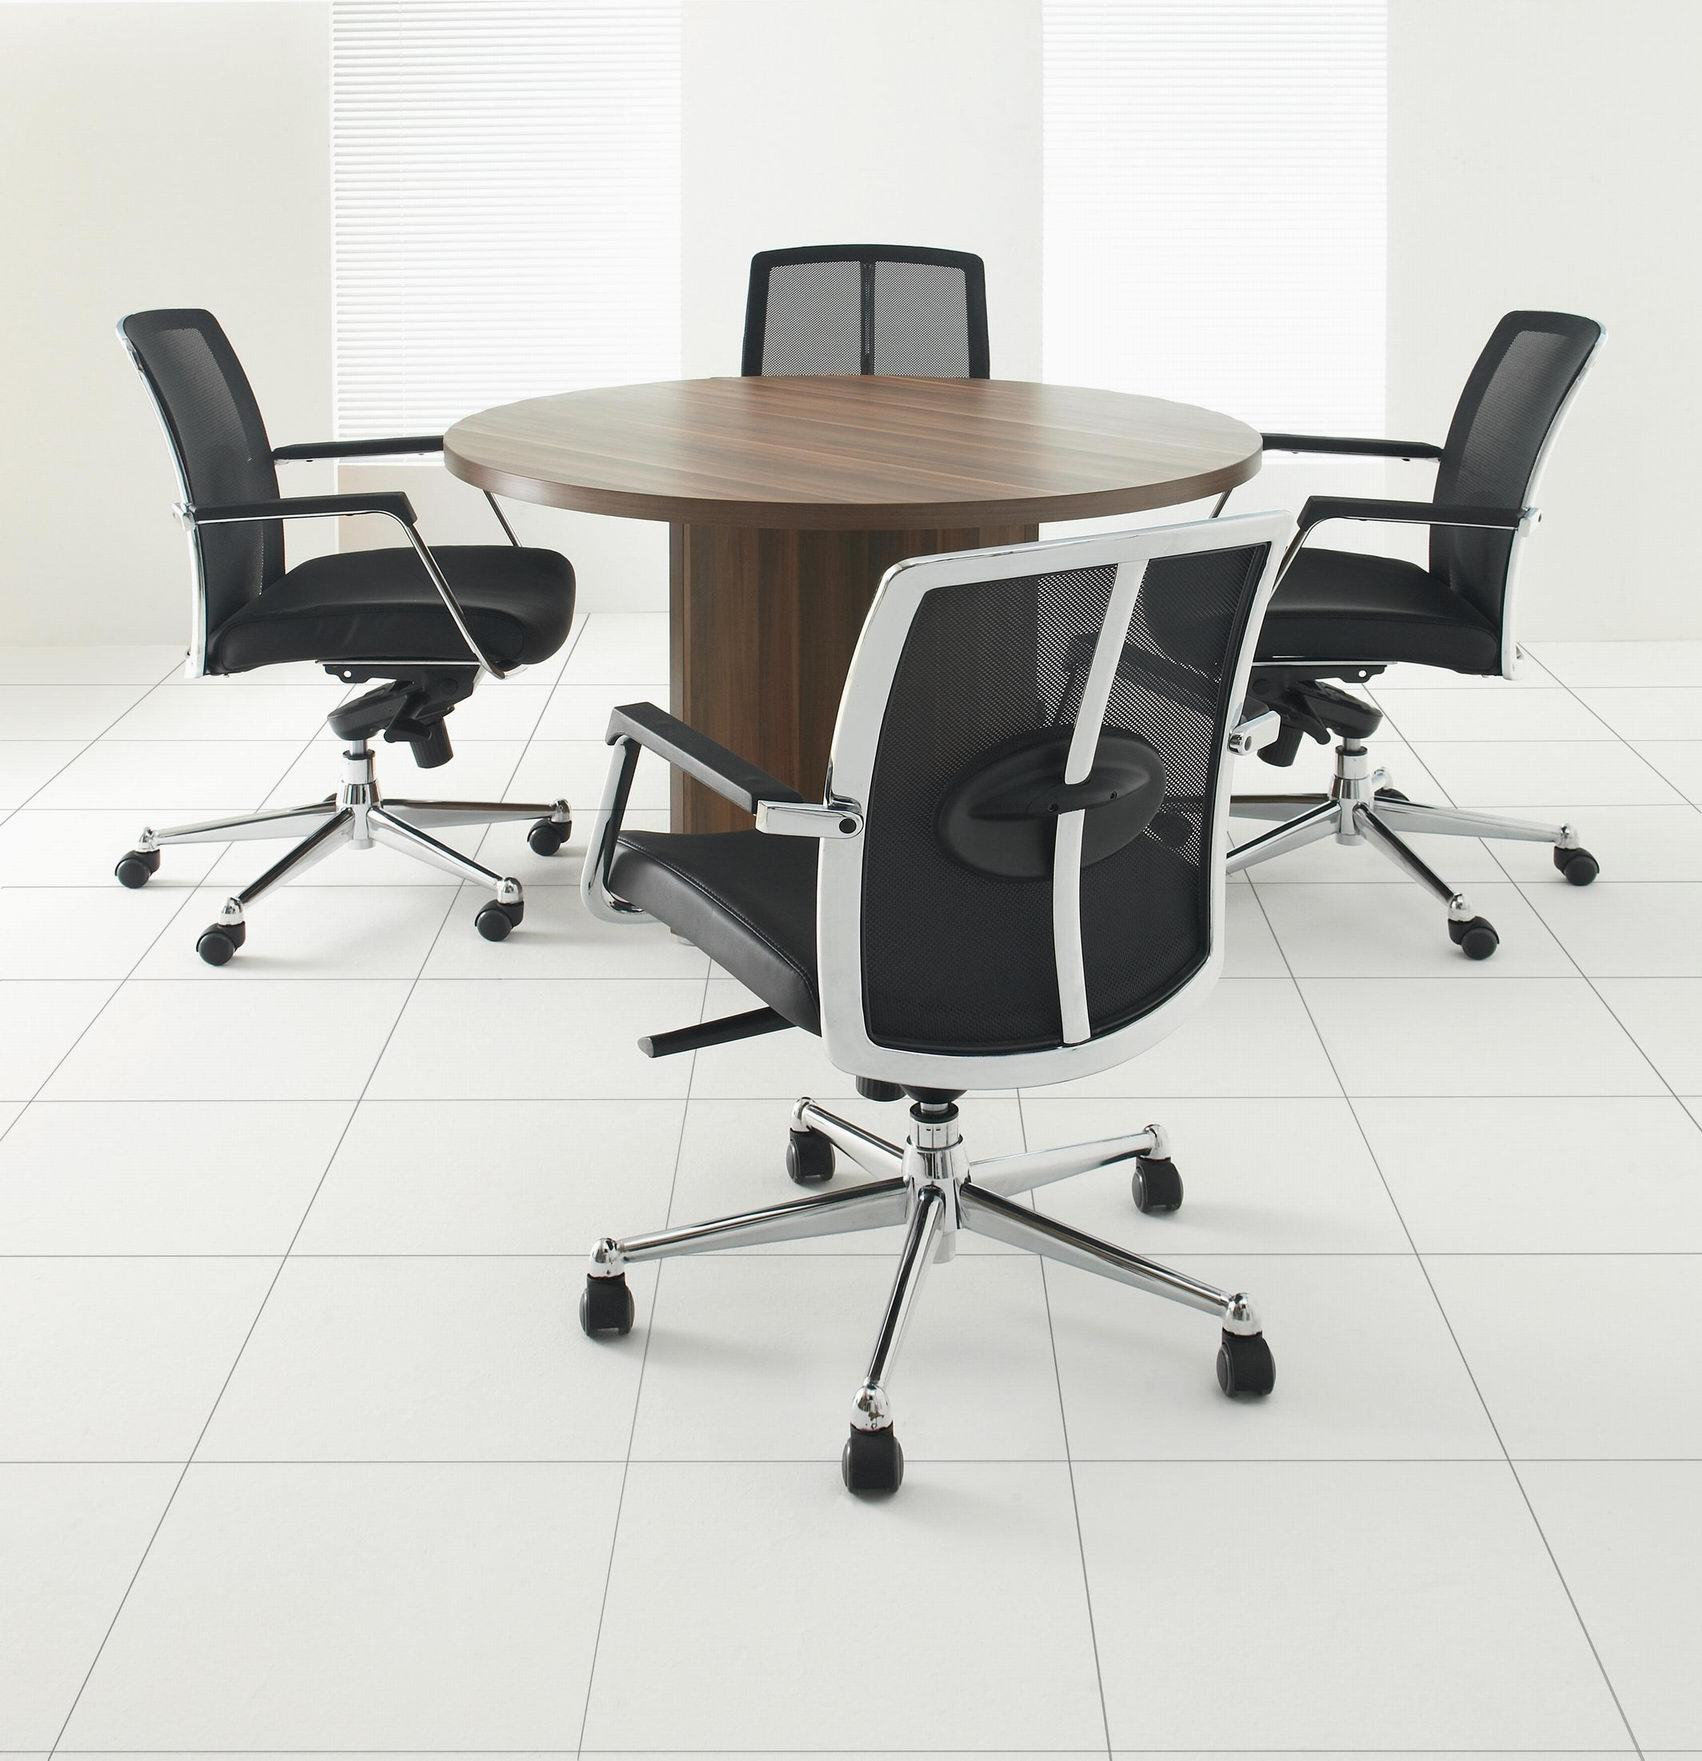 100 Nilkamal Plastic Chairs Price List In Bangalore  : Office Furniture from mitzissister.com size 1702 x 1761 jpeg 240kB